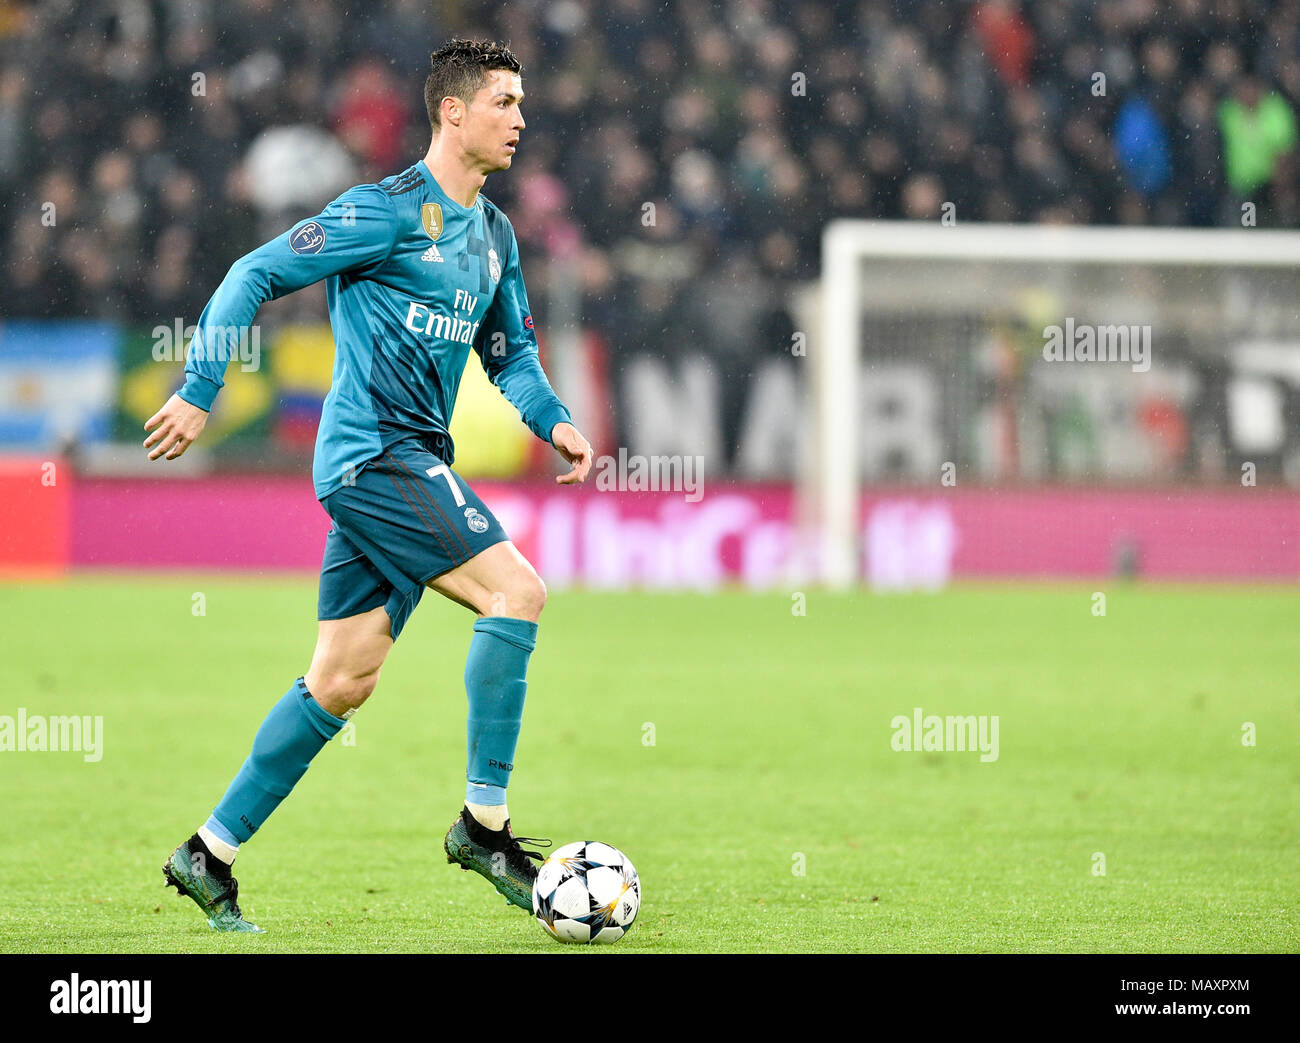 Cristiano Ronaldo (Real Madrid Club de Fútbol),  during the UEFA Champions League quarter-finals 1st leg football match between Juventus FC and Real Madrid CF at Allianz Stadium on 03 April, 2018 in Turin, Italy. - Stock Image